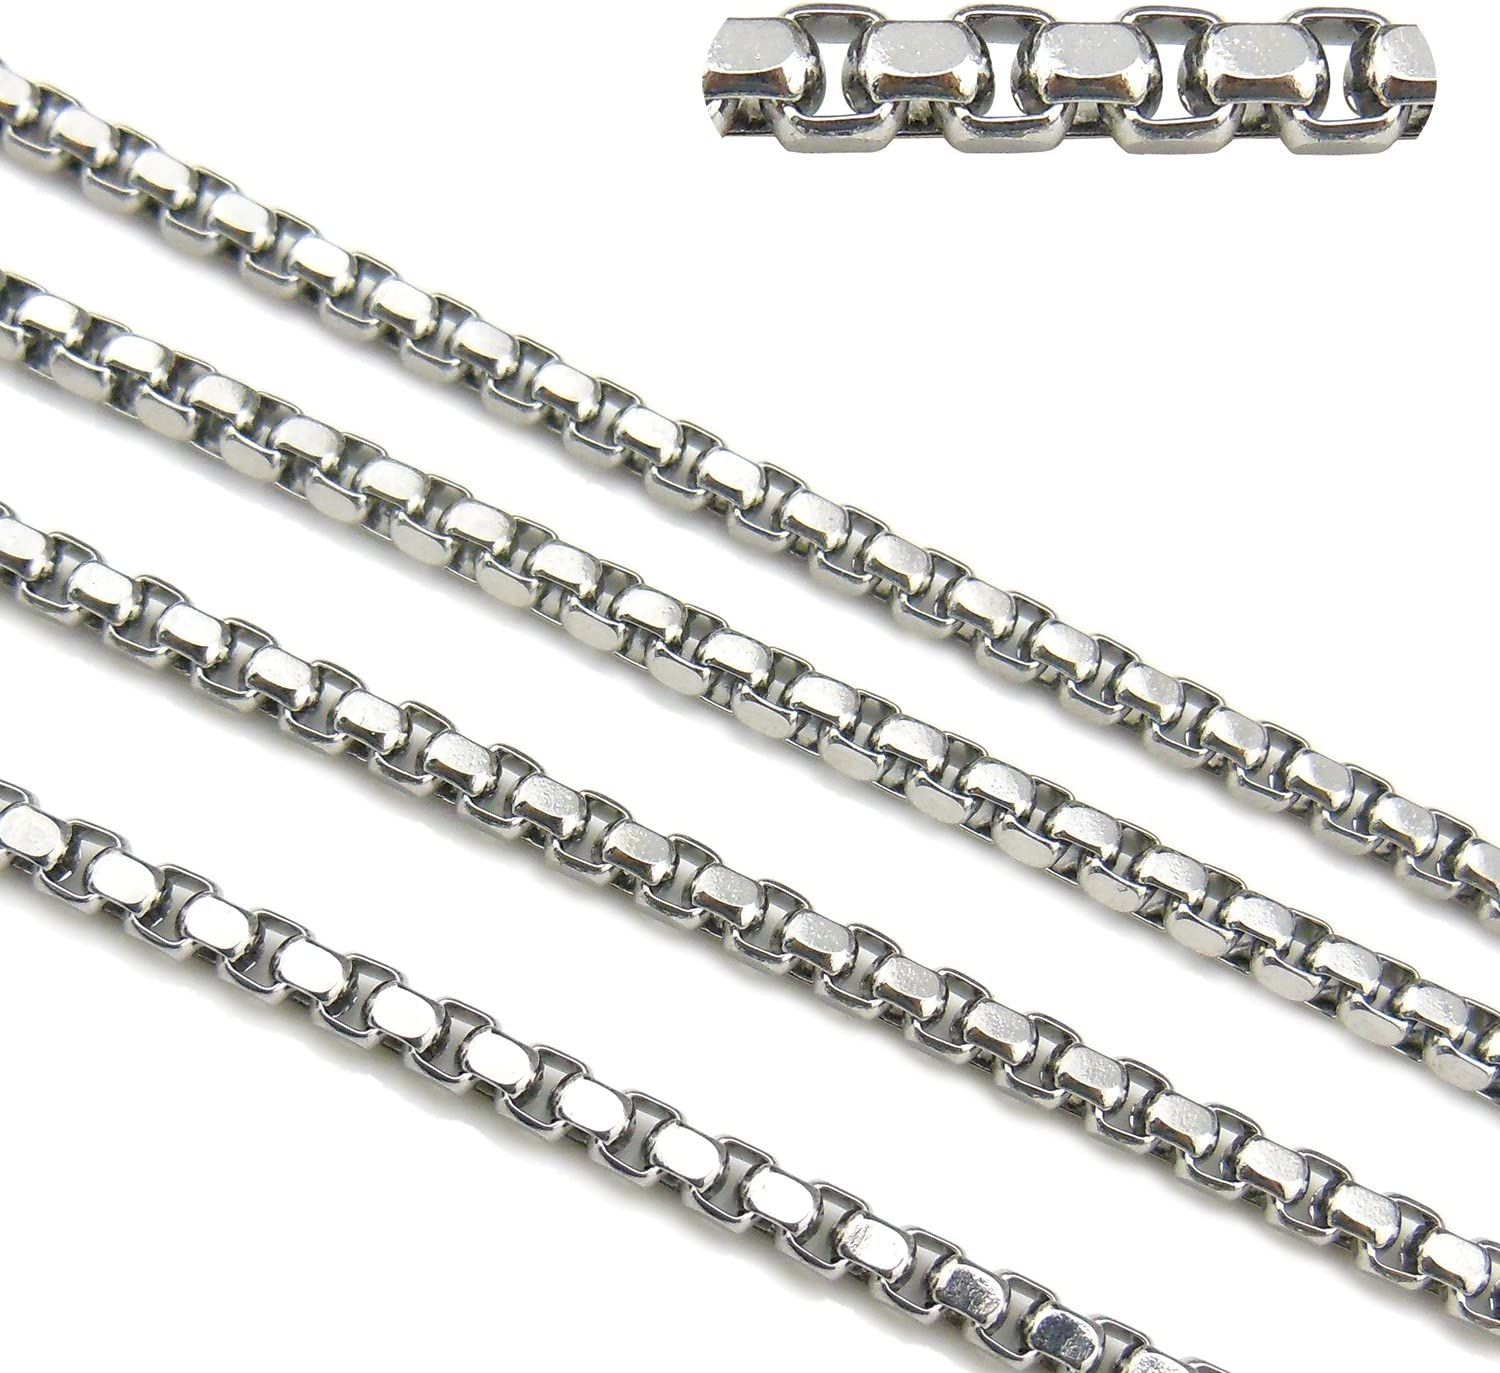 wholesale 50meter Wide 6mm Braid Chain Stainless Steel jewelry findings Chain